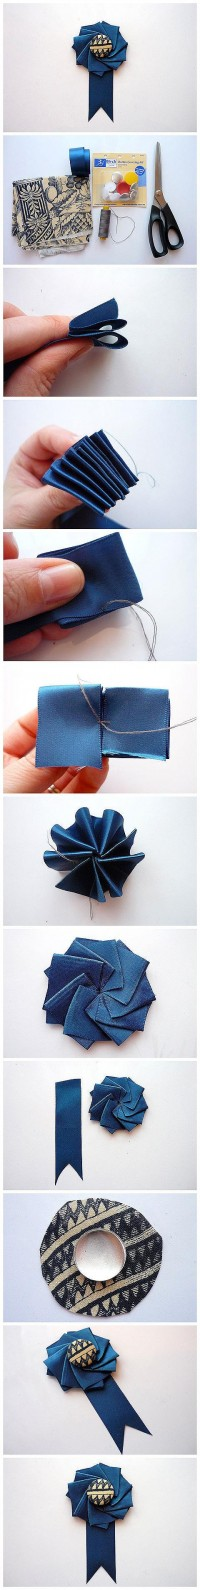 DIY Flower Hair Accessory DIY Projects | UsefulDIY.com